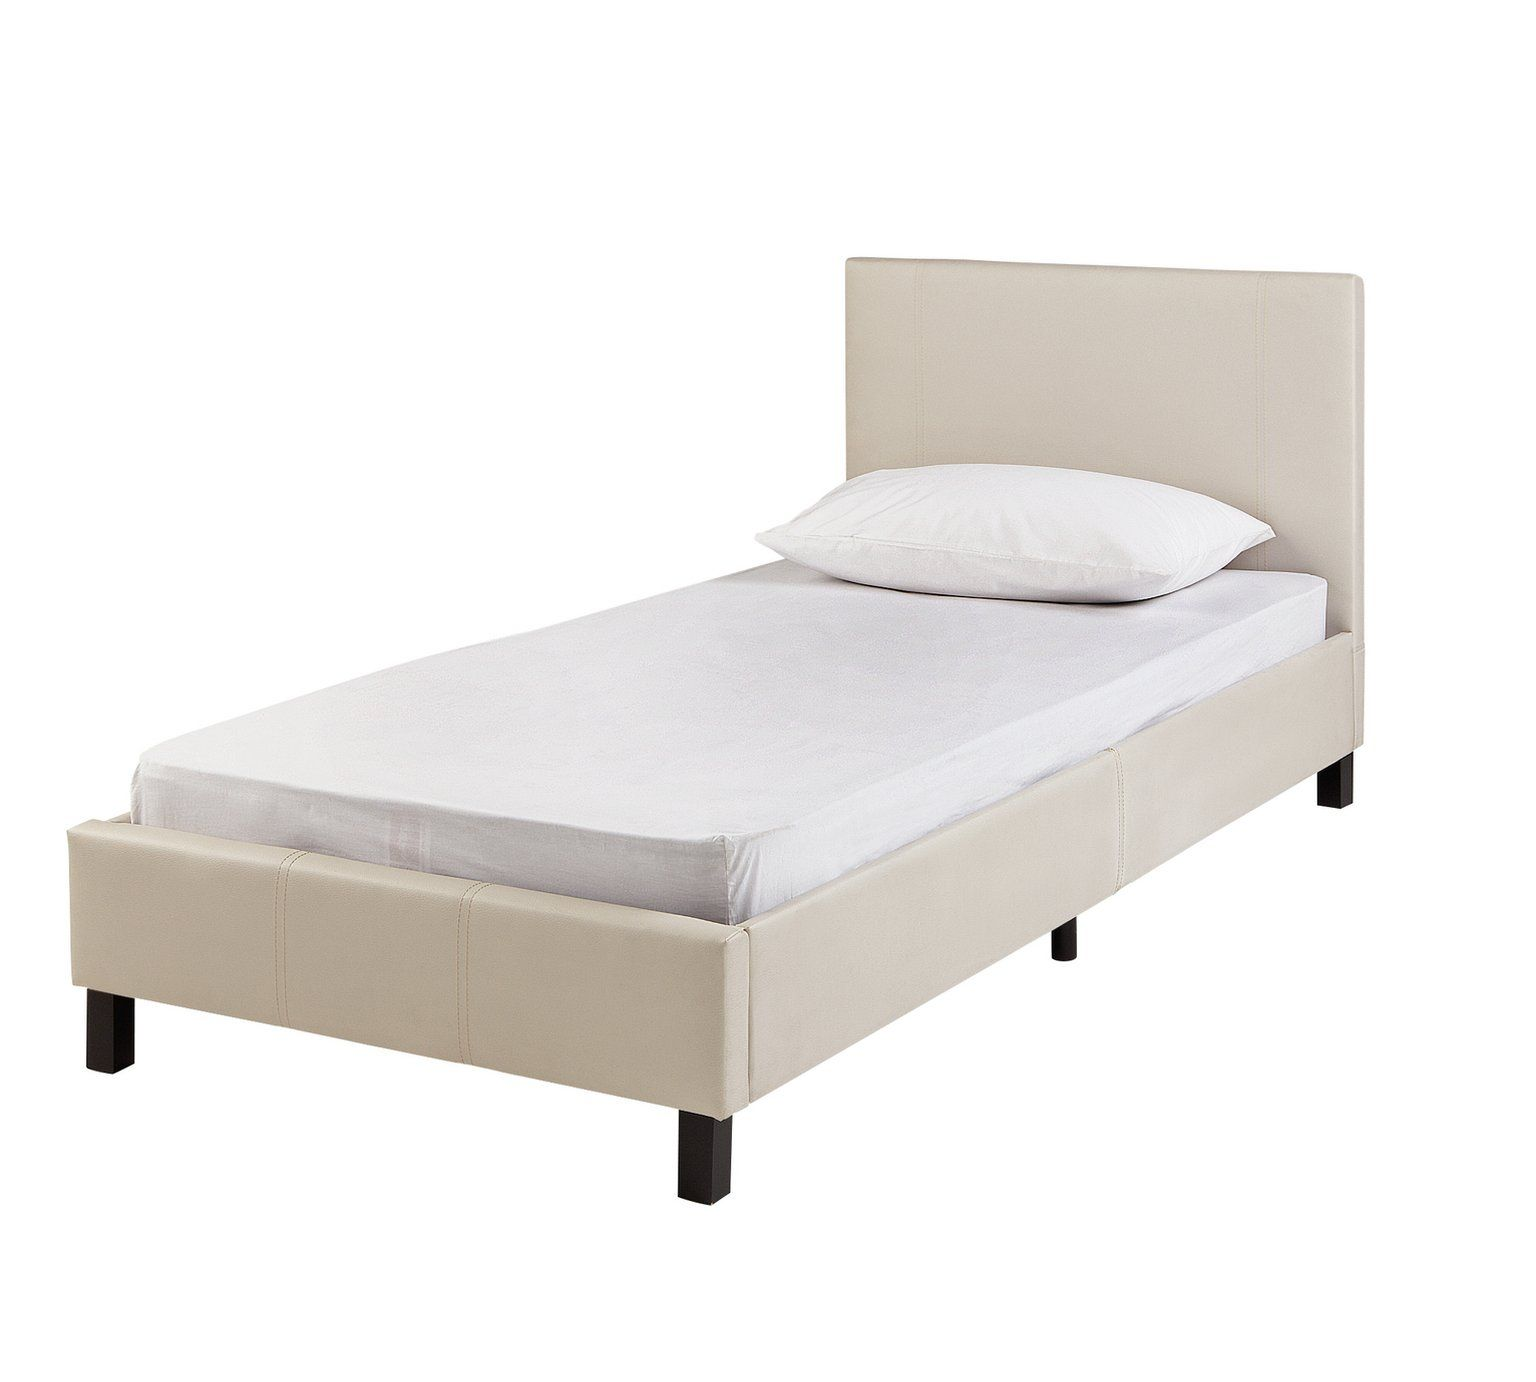 Buy Home Erica Single Bed Frame Natural Bed Frames Argos Single Bed Frame Single Bed Argos Home